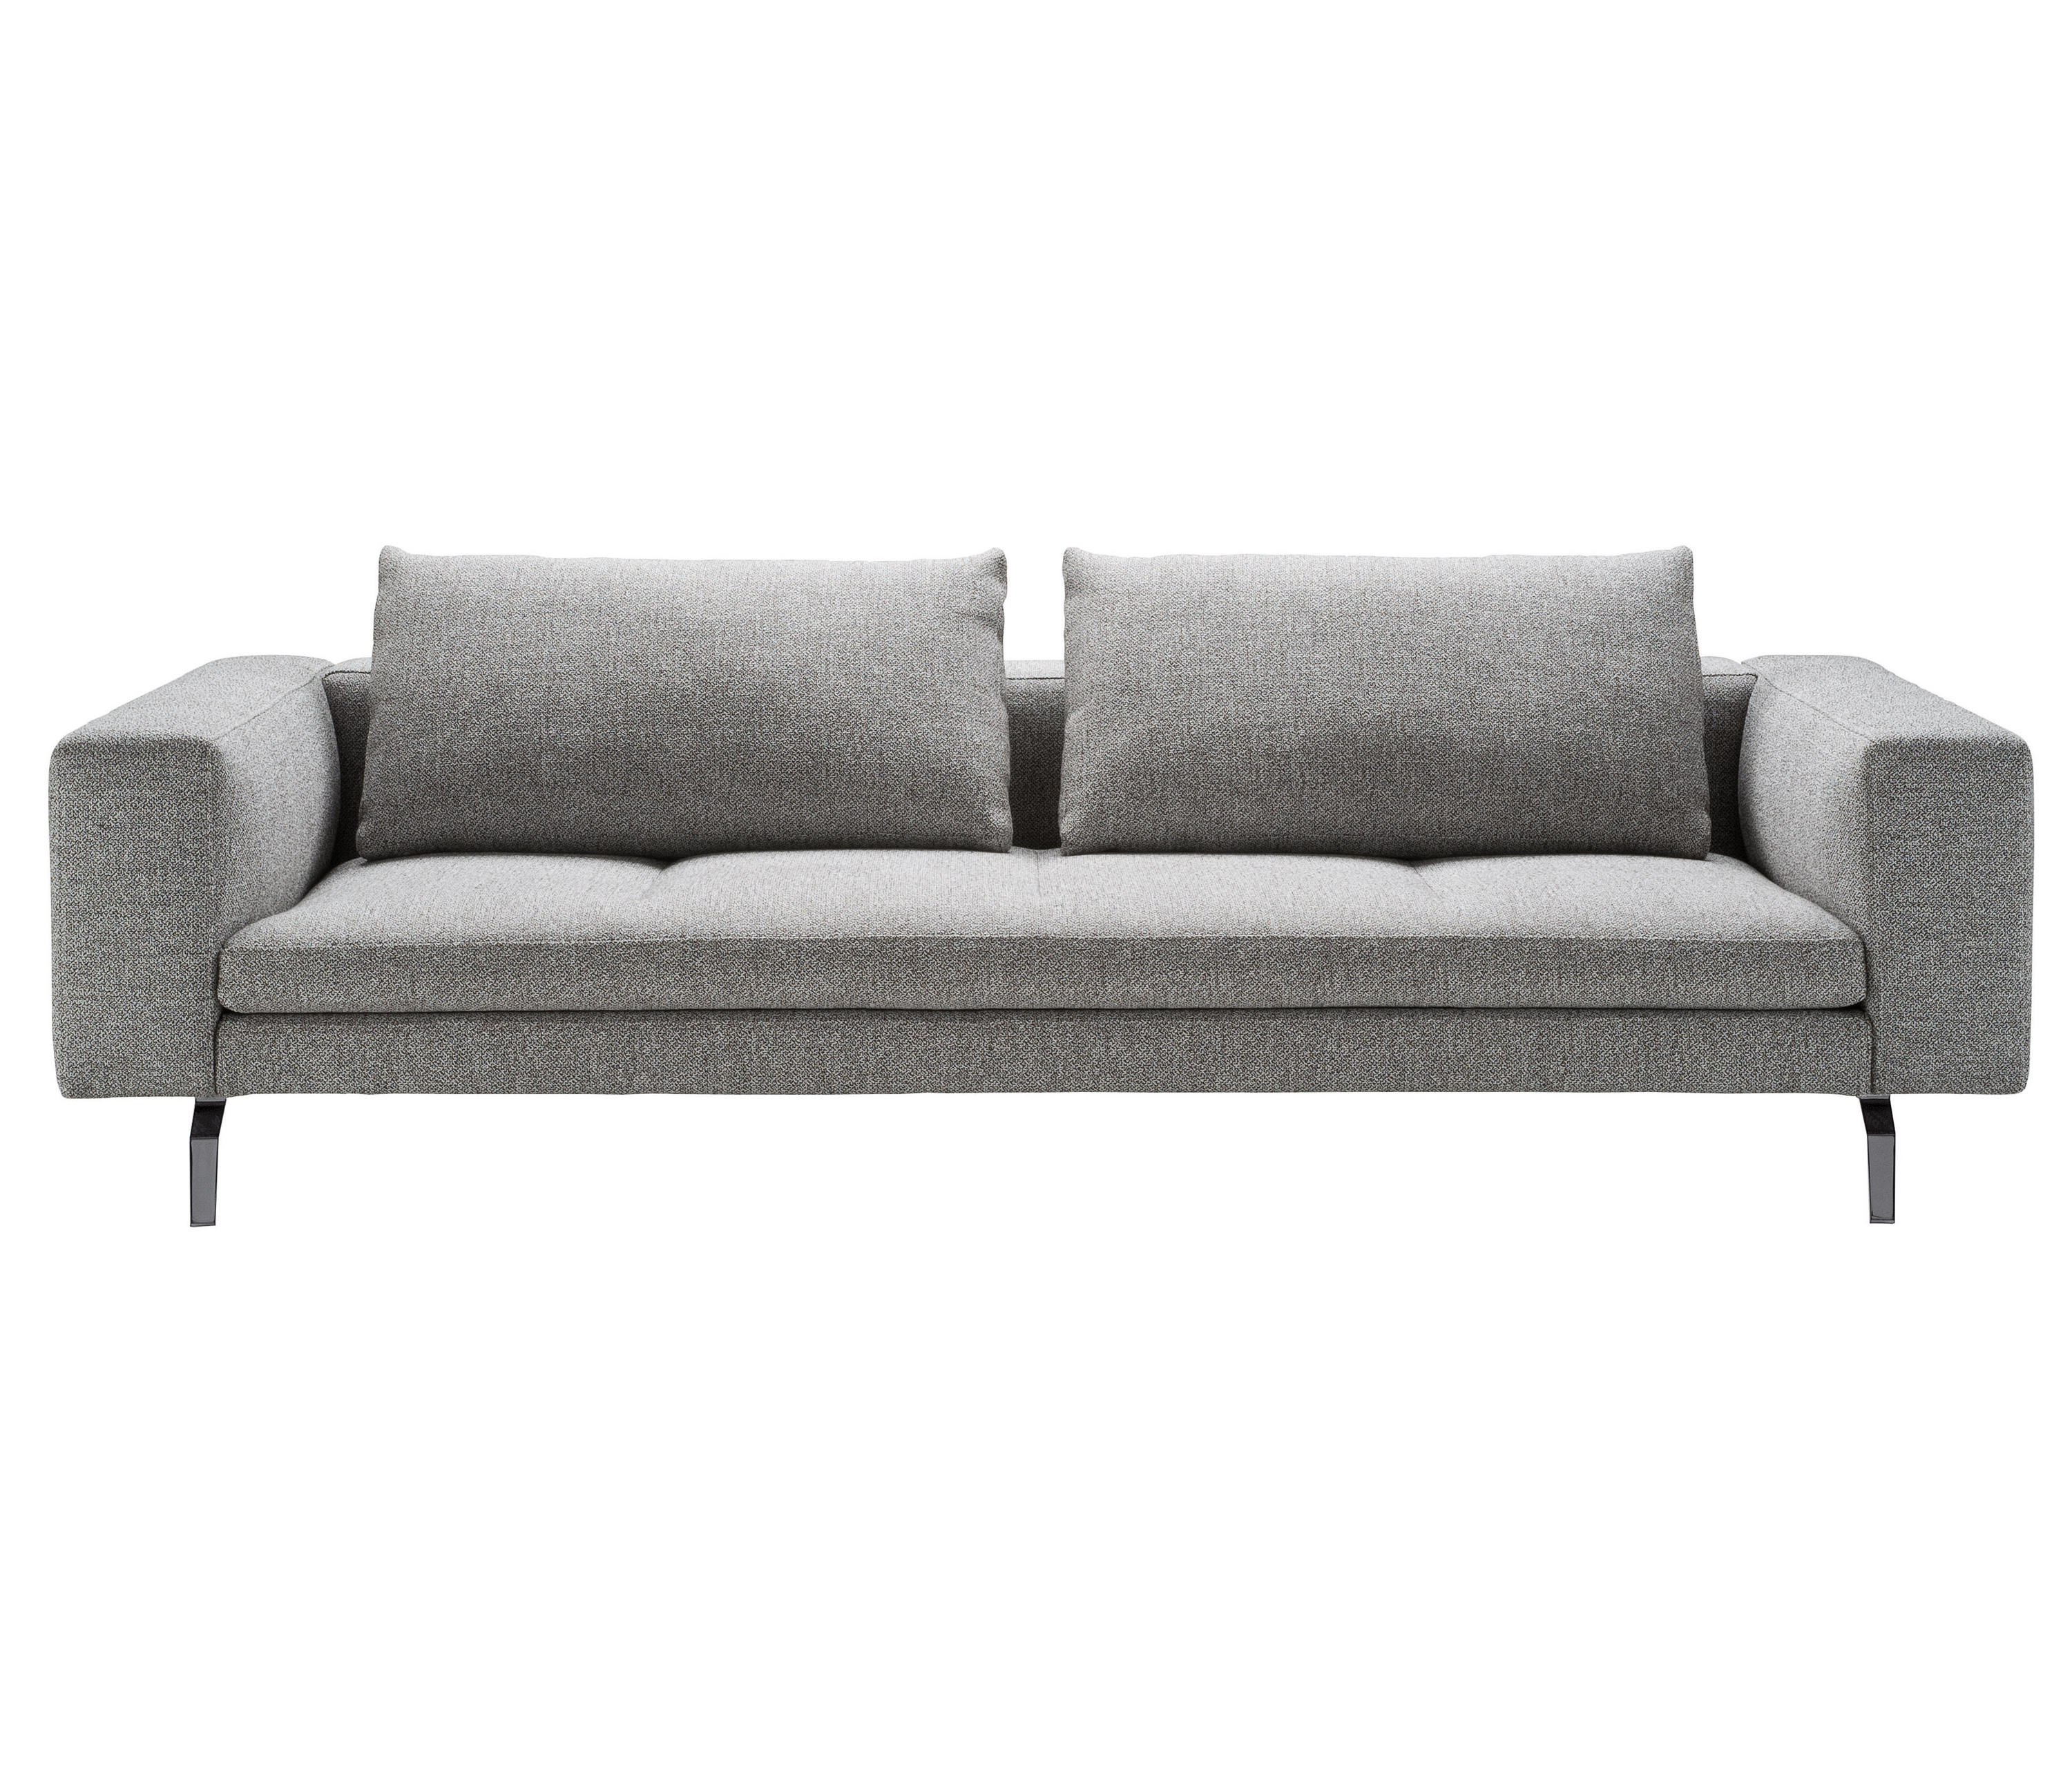 Seating Furniture Research And Select Zanotta Products Online